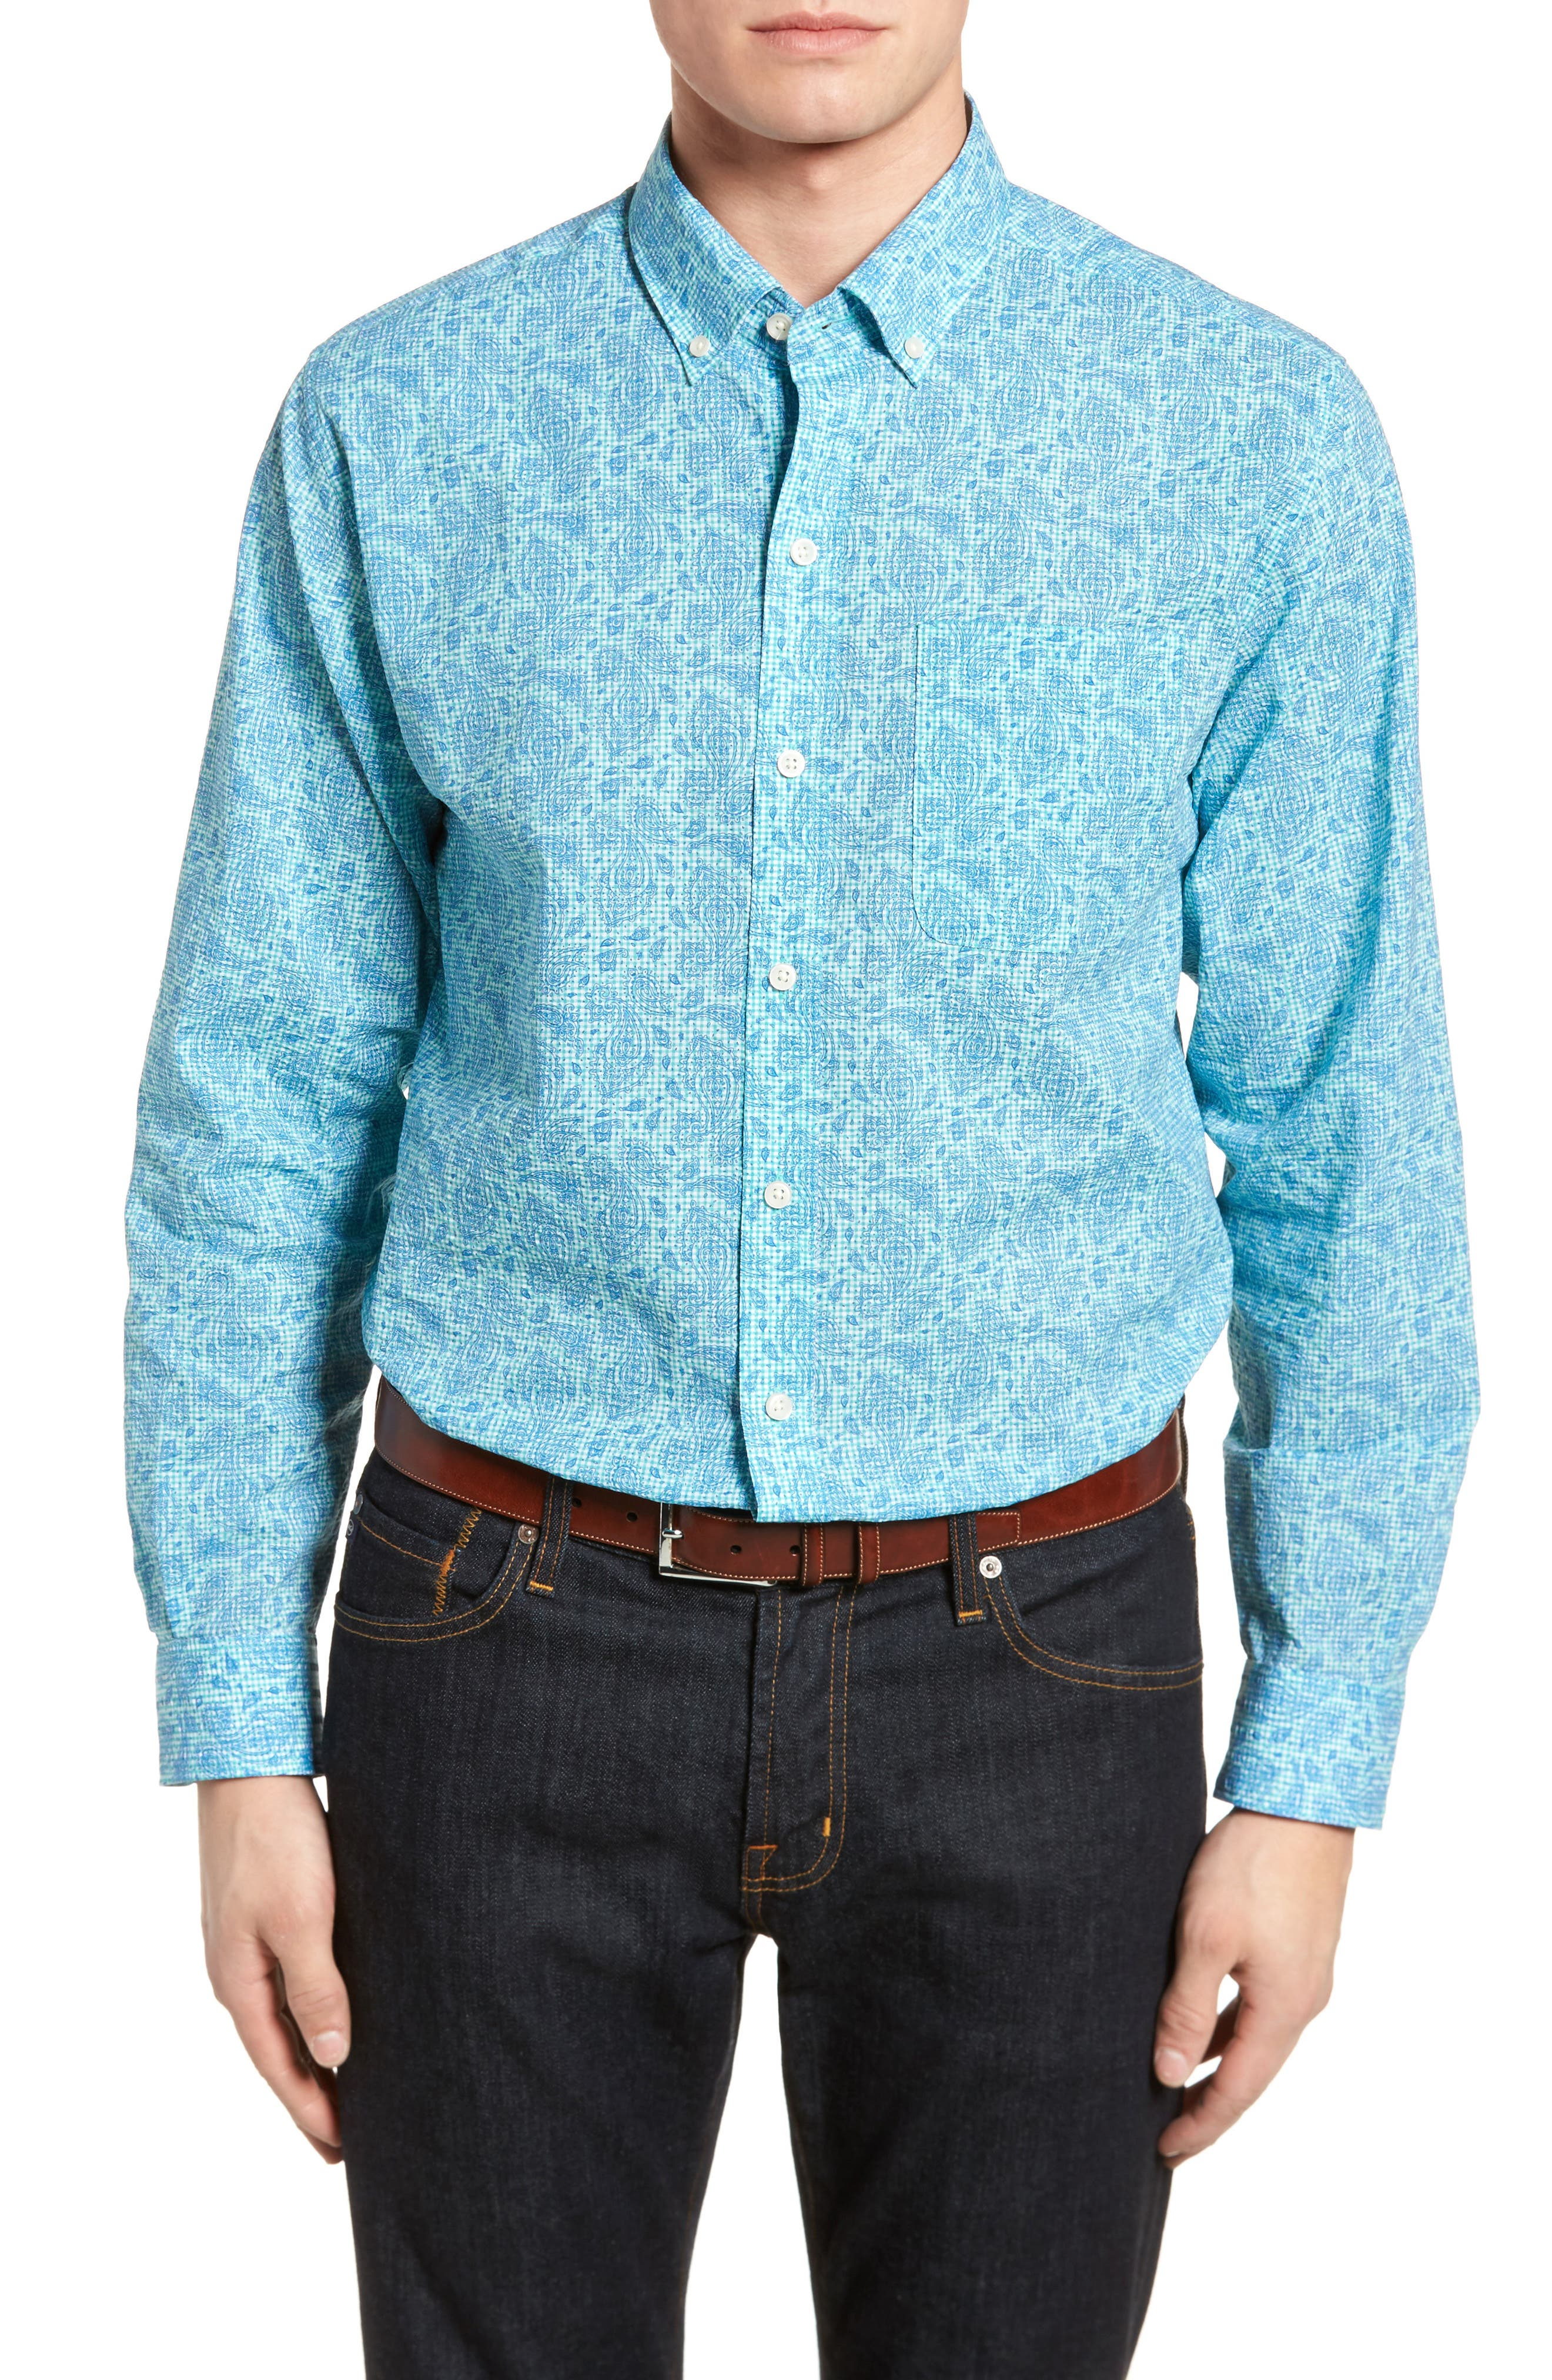 Jameson Classic Fit Print Seersucker Sport Shirt,                             Main thumbnail 1, color,                             328